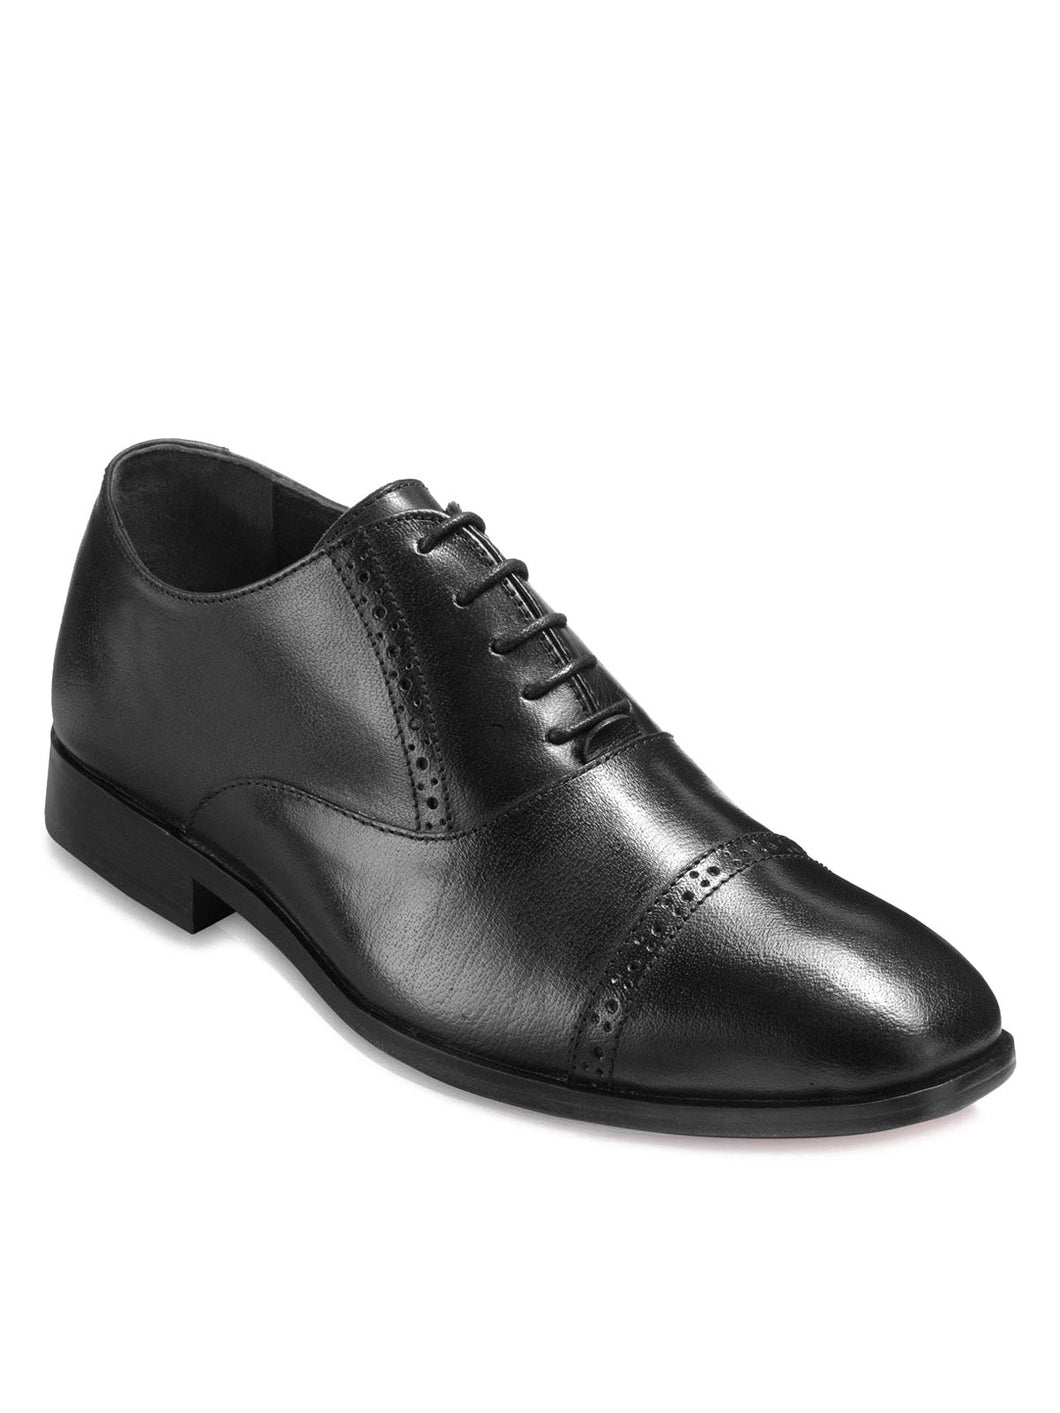 Teakwood Genuine Leather Oxford shoes